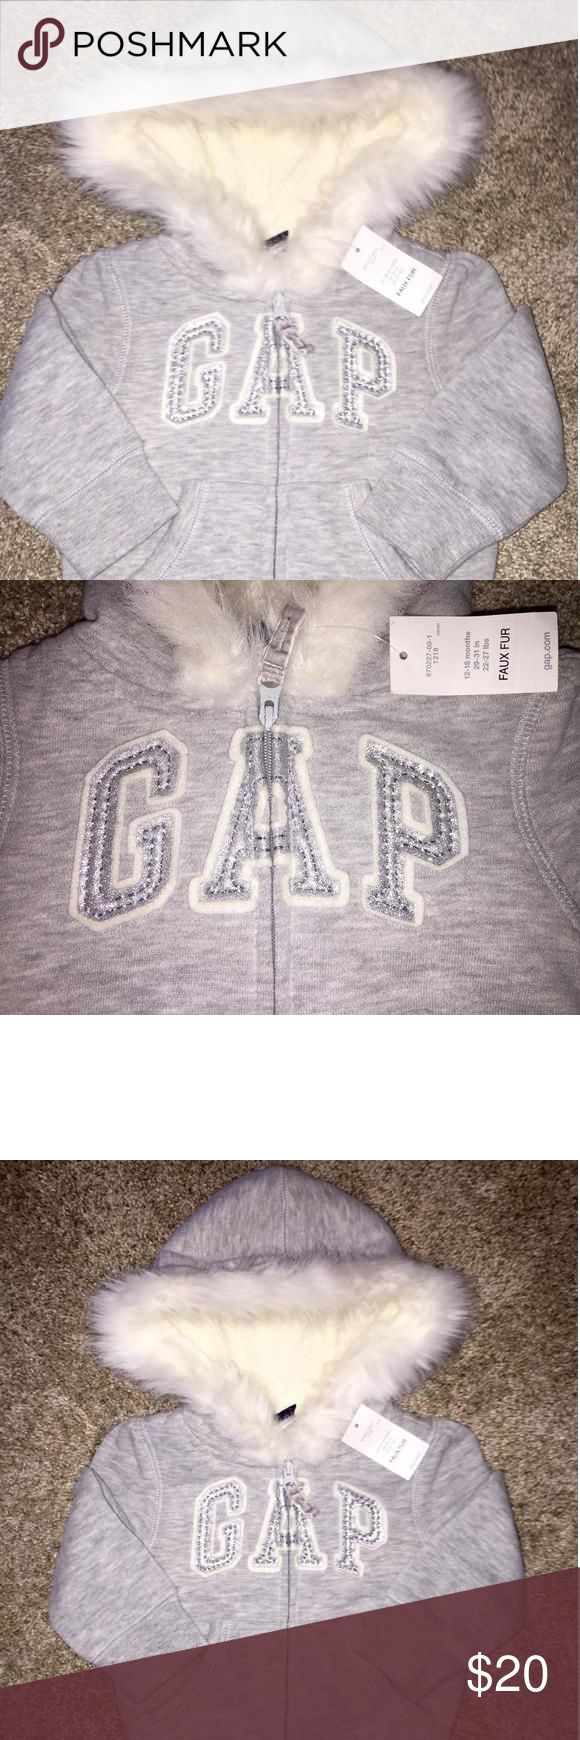 Baby GAP Faux Fur Hoodie with Glitter Logo 12-18 months GAP Faux Fur Hoodie with Glitter Logo with Faux Fur inside the body of hoodie and on hood. Super Cute & warm perfect for Fall GAP size 12-18 months Baby Gap Shirts & Tops Sweatshirts & Hoodies